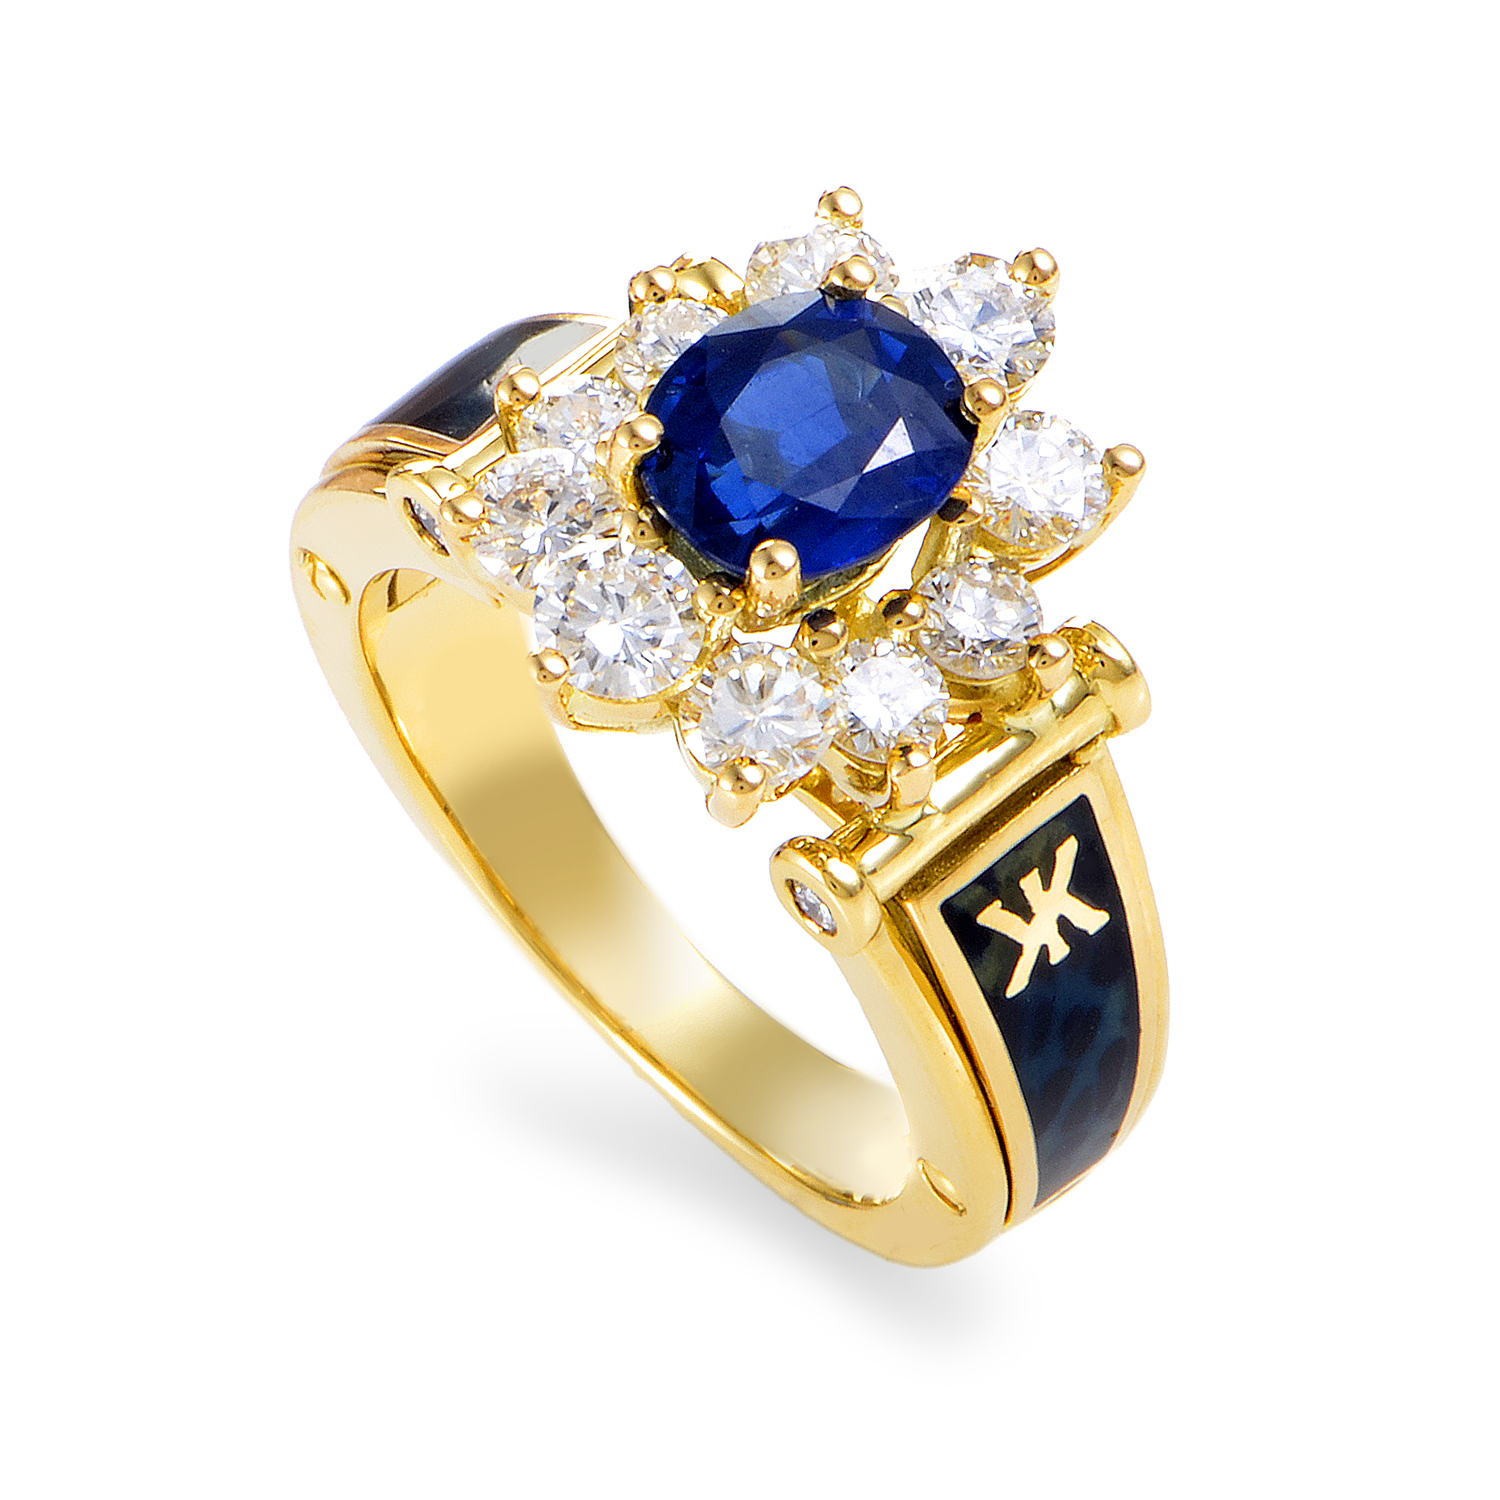 Korloff Women's 18K Yellow Gold Diamond & Sapphire Enameled Ring